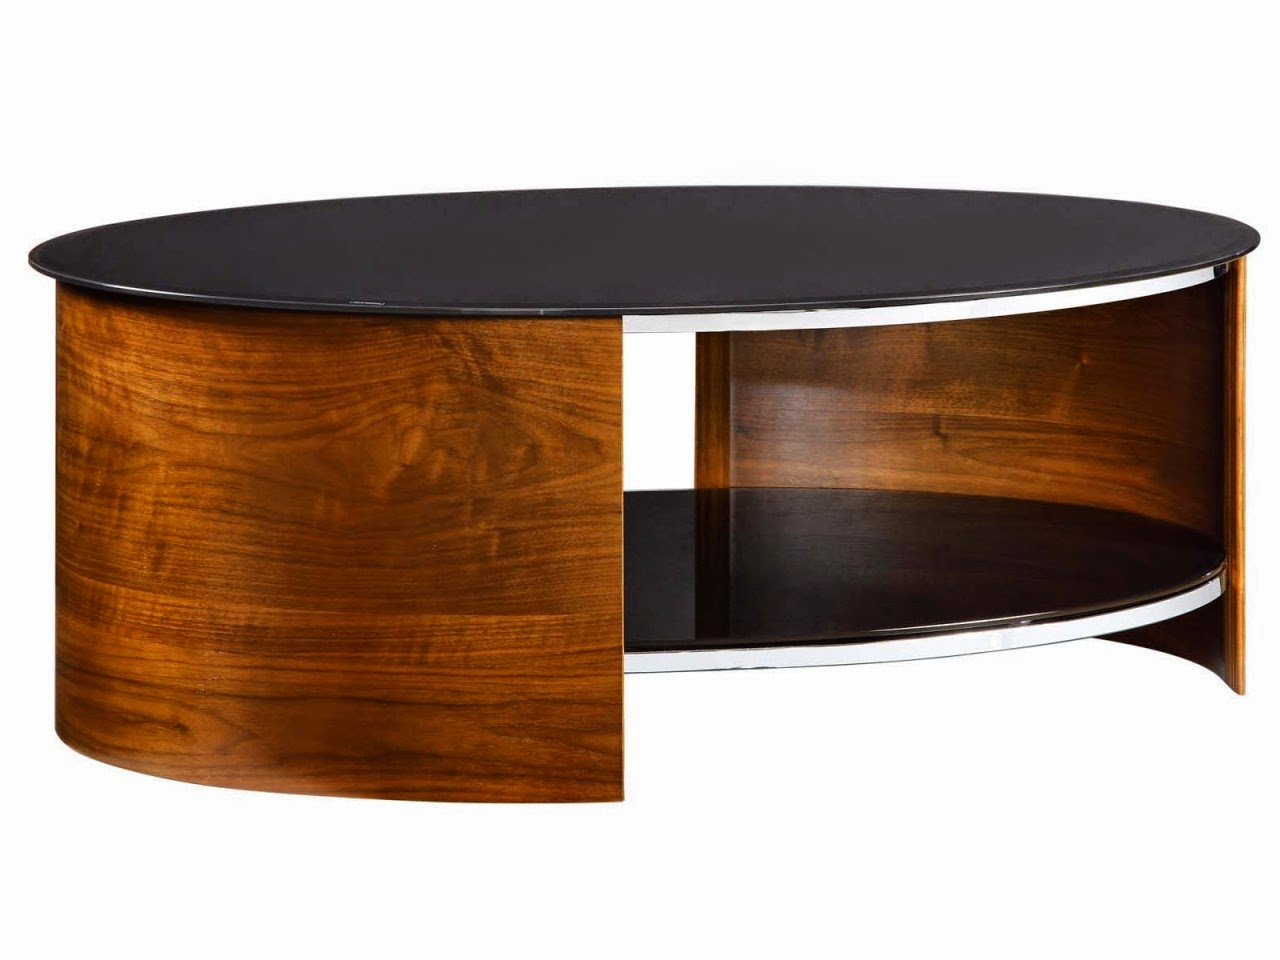 Black Coffee Table For Sale Cherry Wood Coffee Tables For Sale